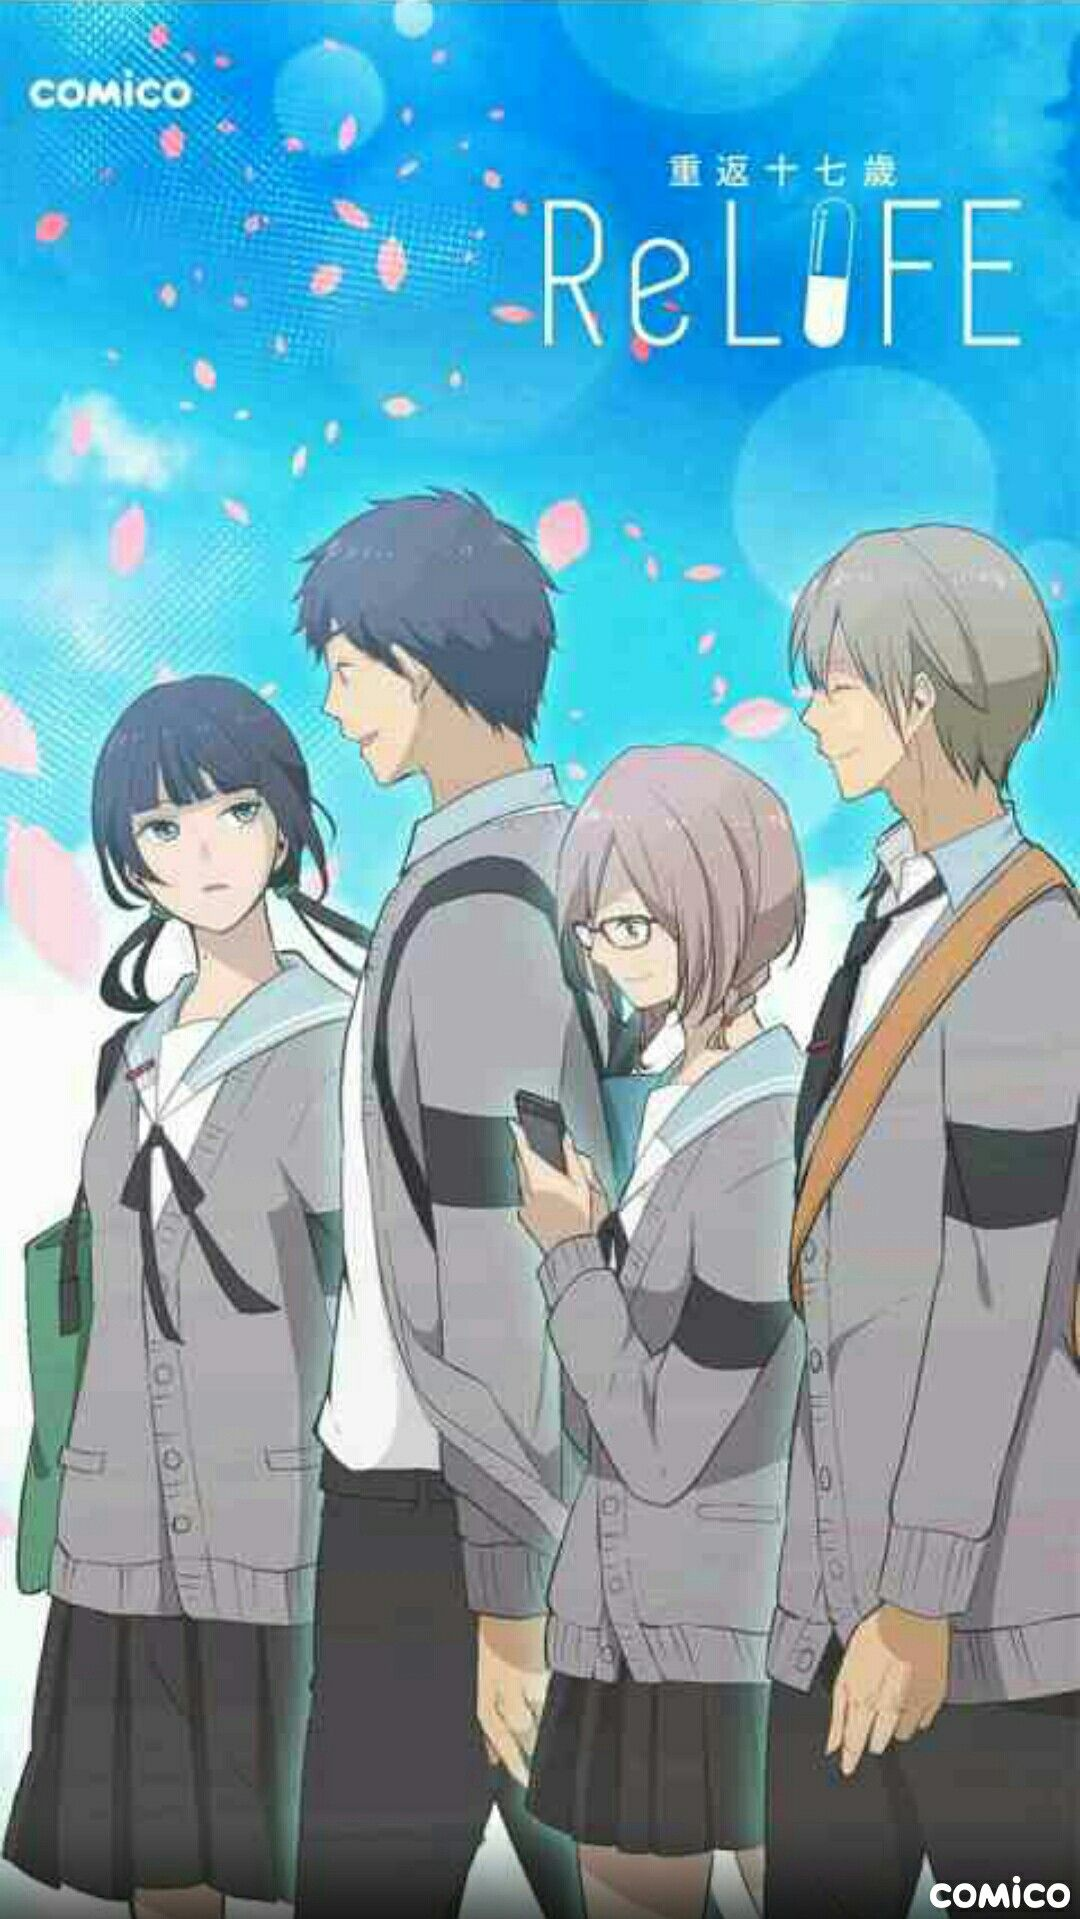 Relife Relife リライフ アニメ イラスト Et マンガ